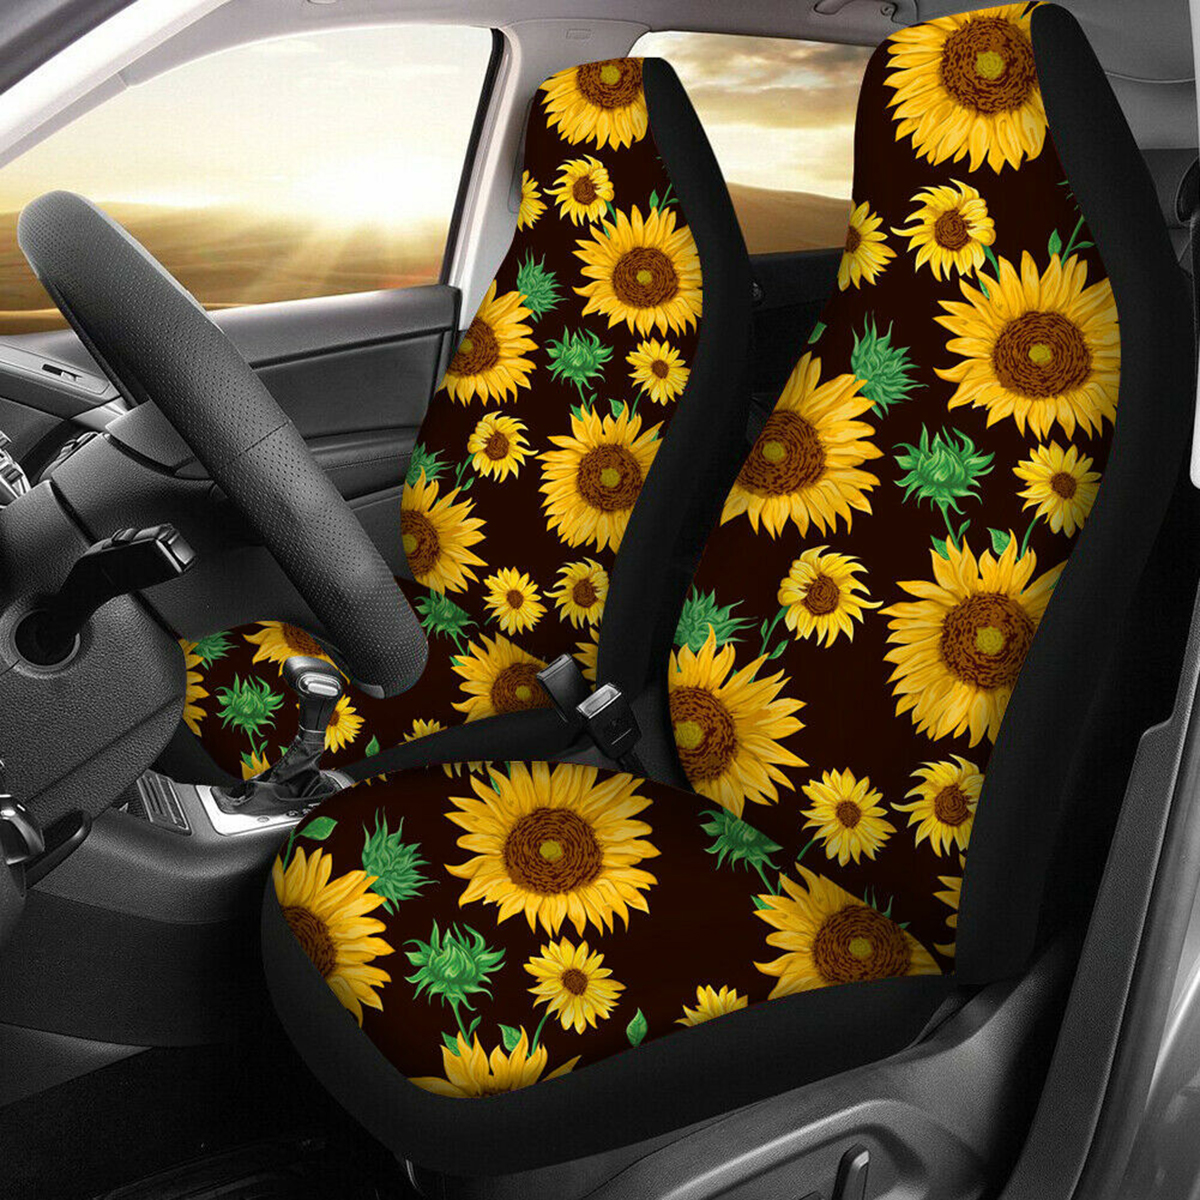 Kunming~ Sunflowers Wall Art Peace Sign Car Seat Covers for Front Vehicle Seat Protector Fit Most Car Truck SUV Van 1 PCS